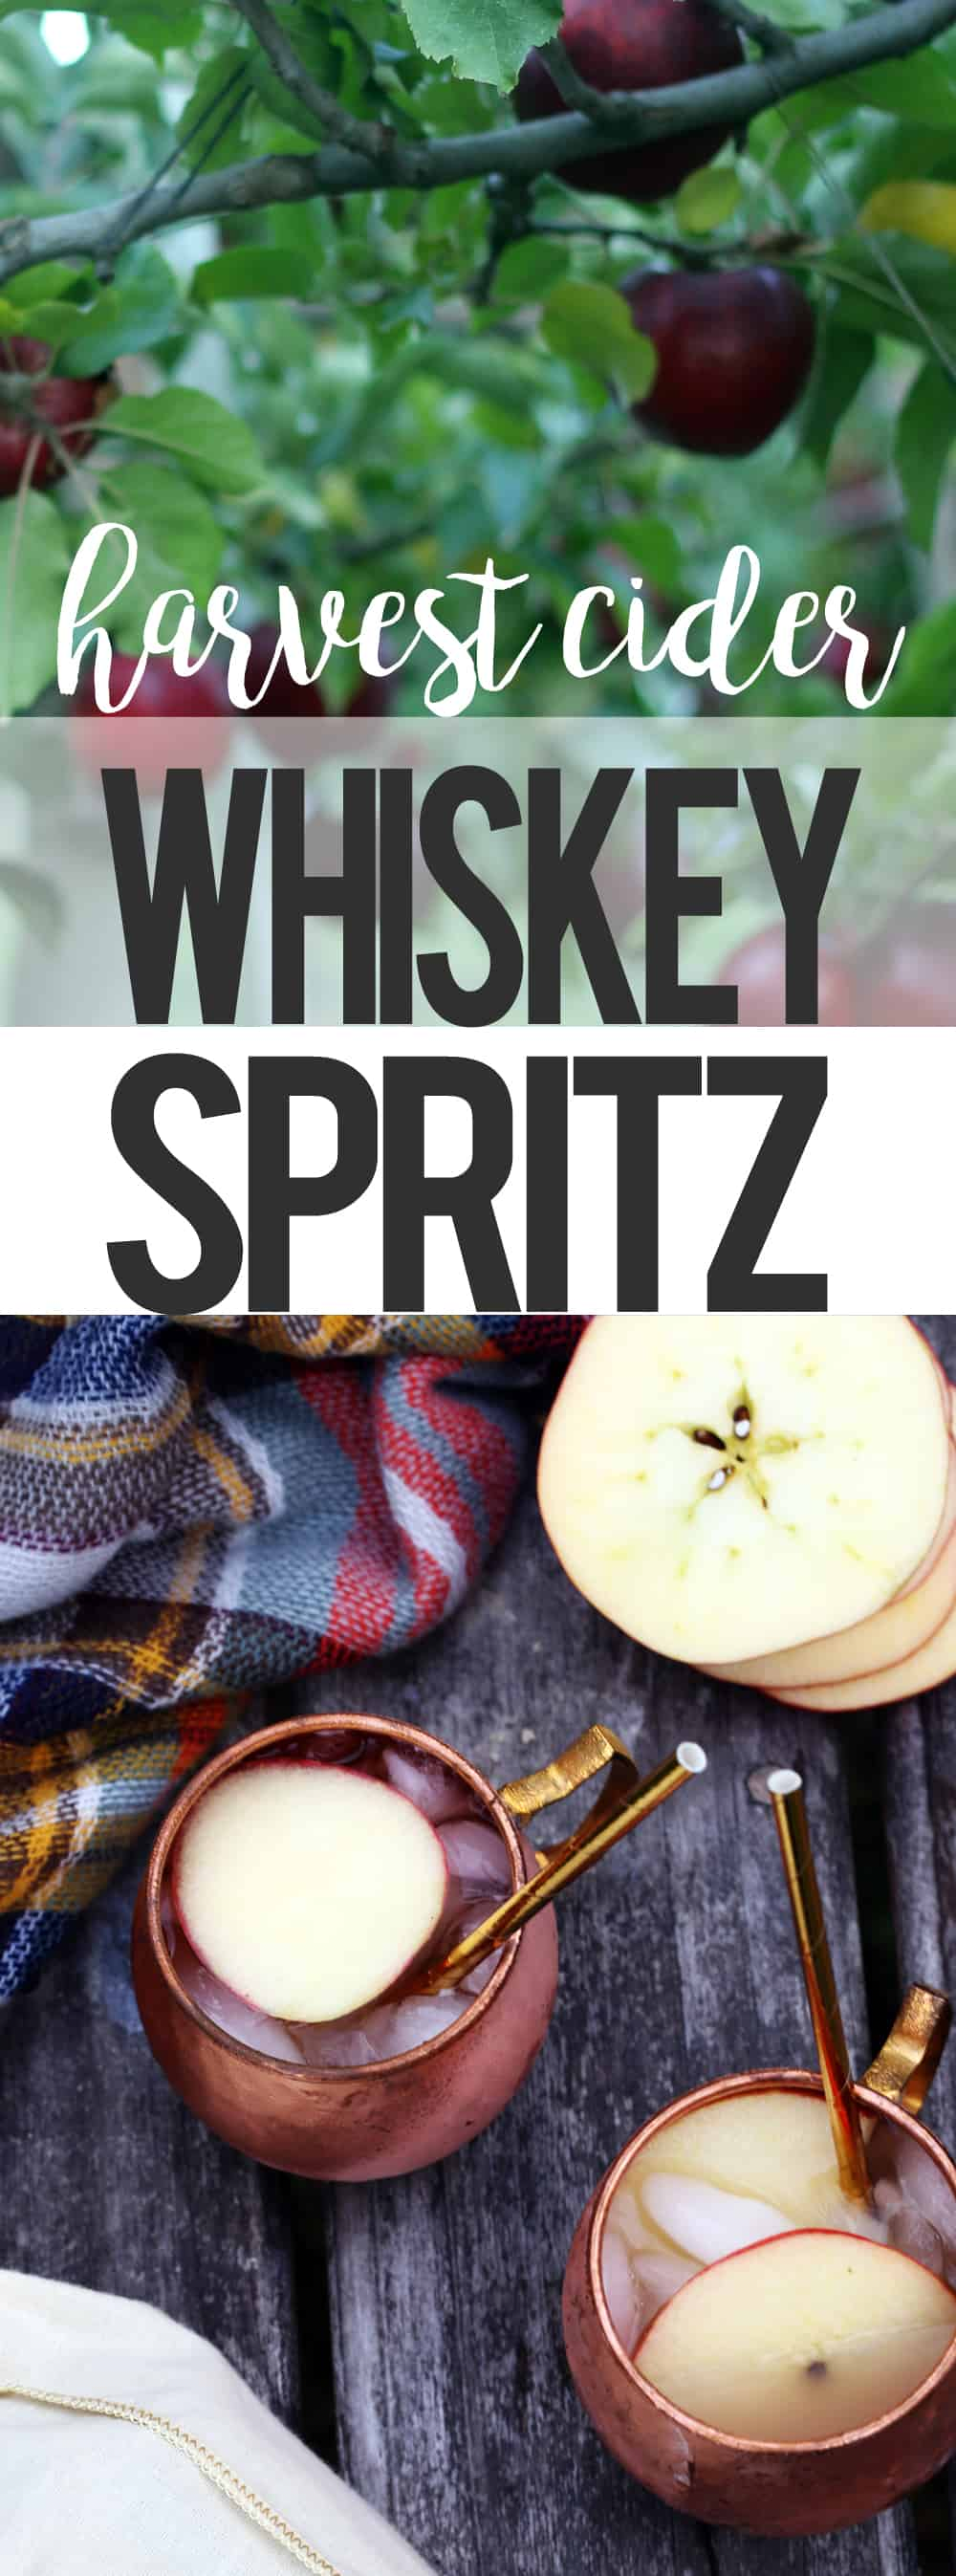 #CollectiveBias #thewhiskey5 Harvest Cider Whiskey Spritz #ad MSG 4 21+ cocktail fall winter cider apples whiskey